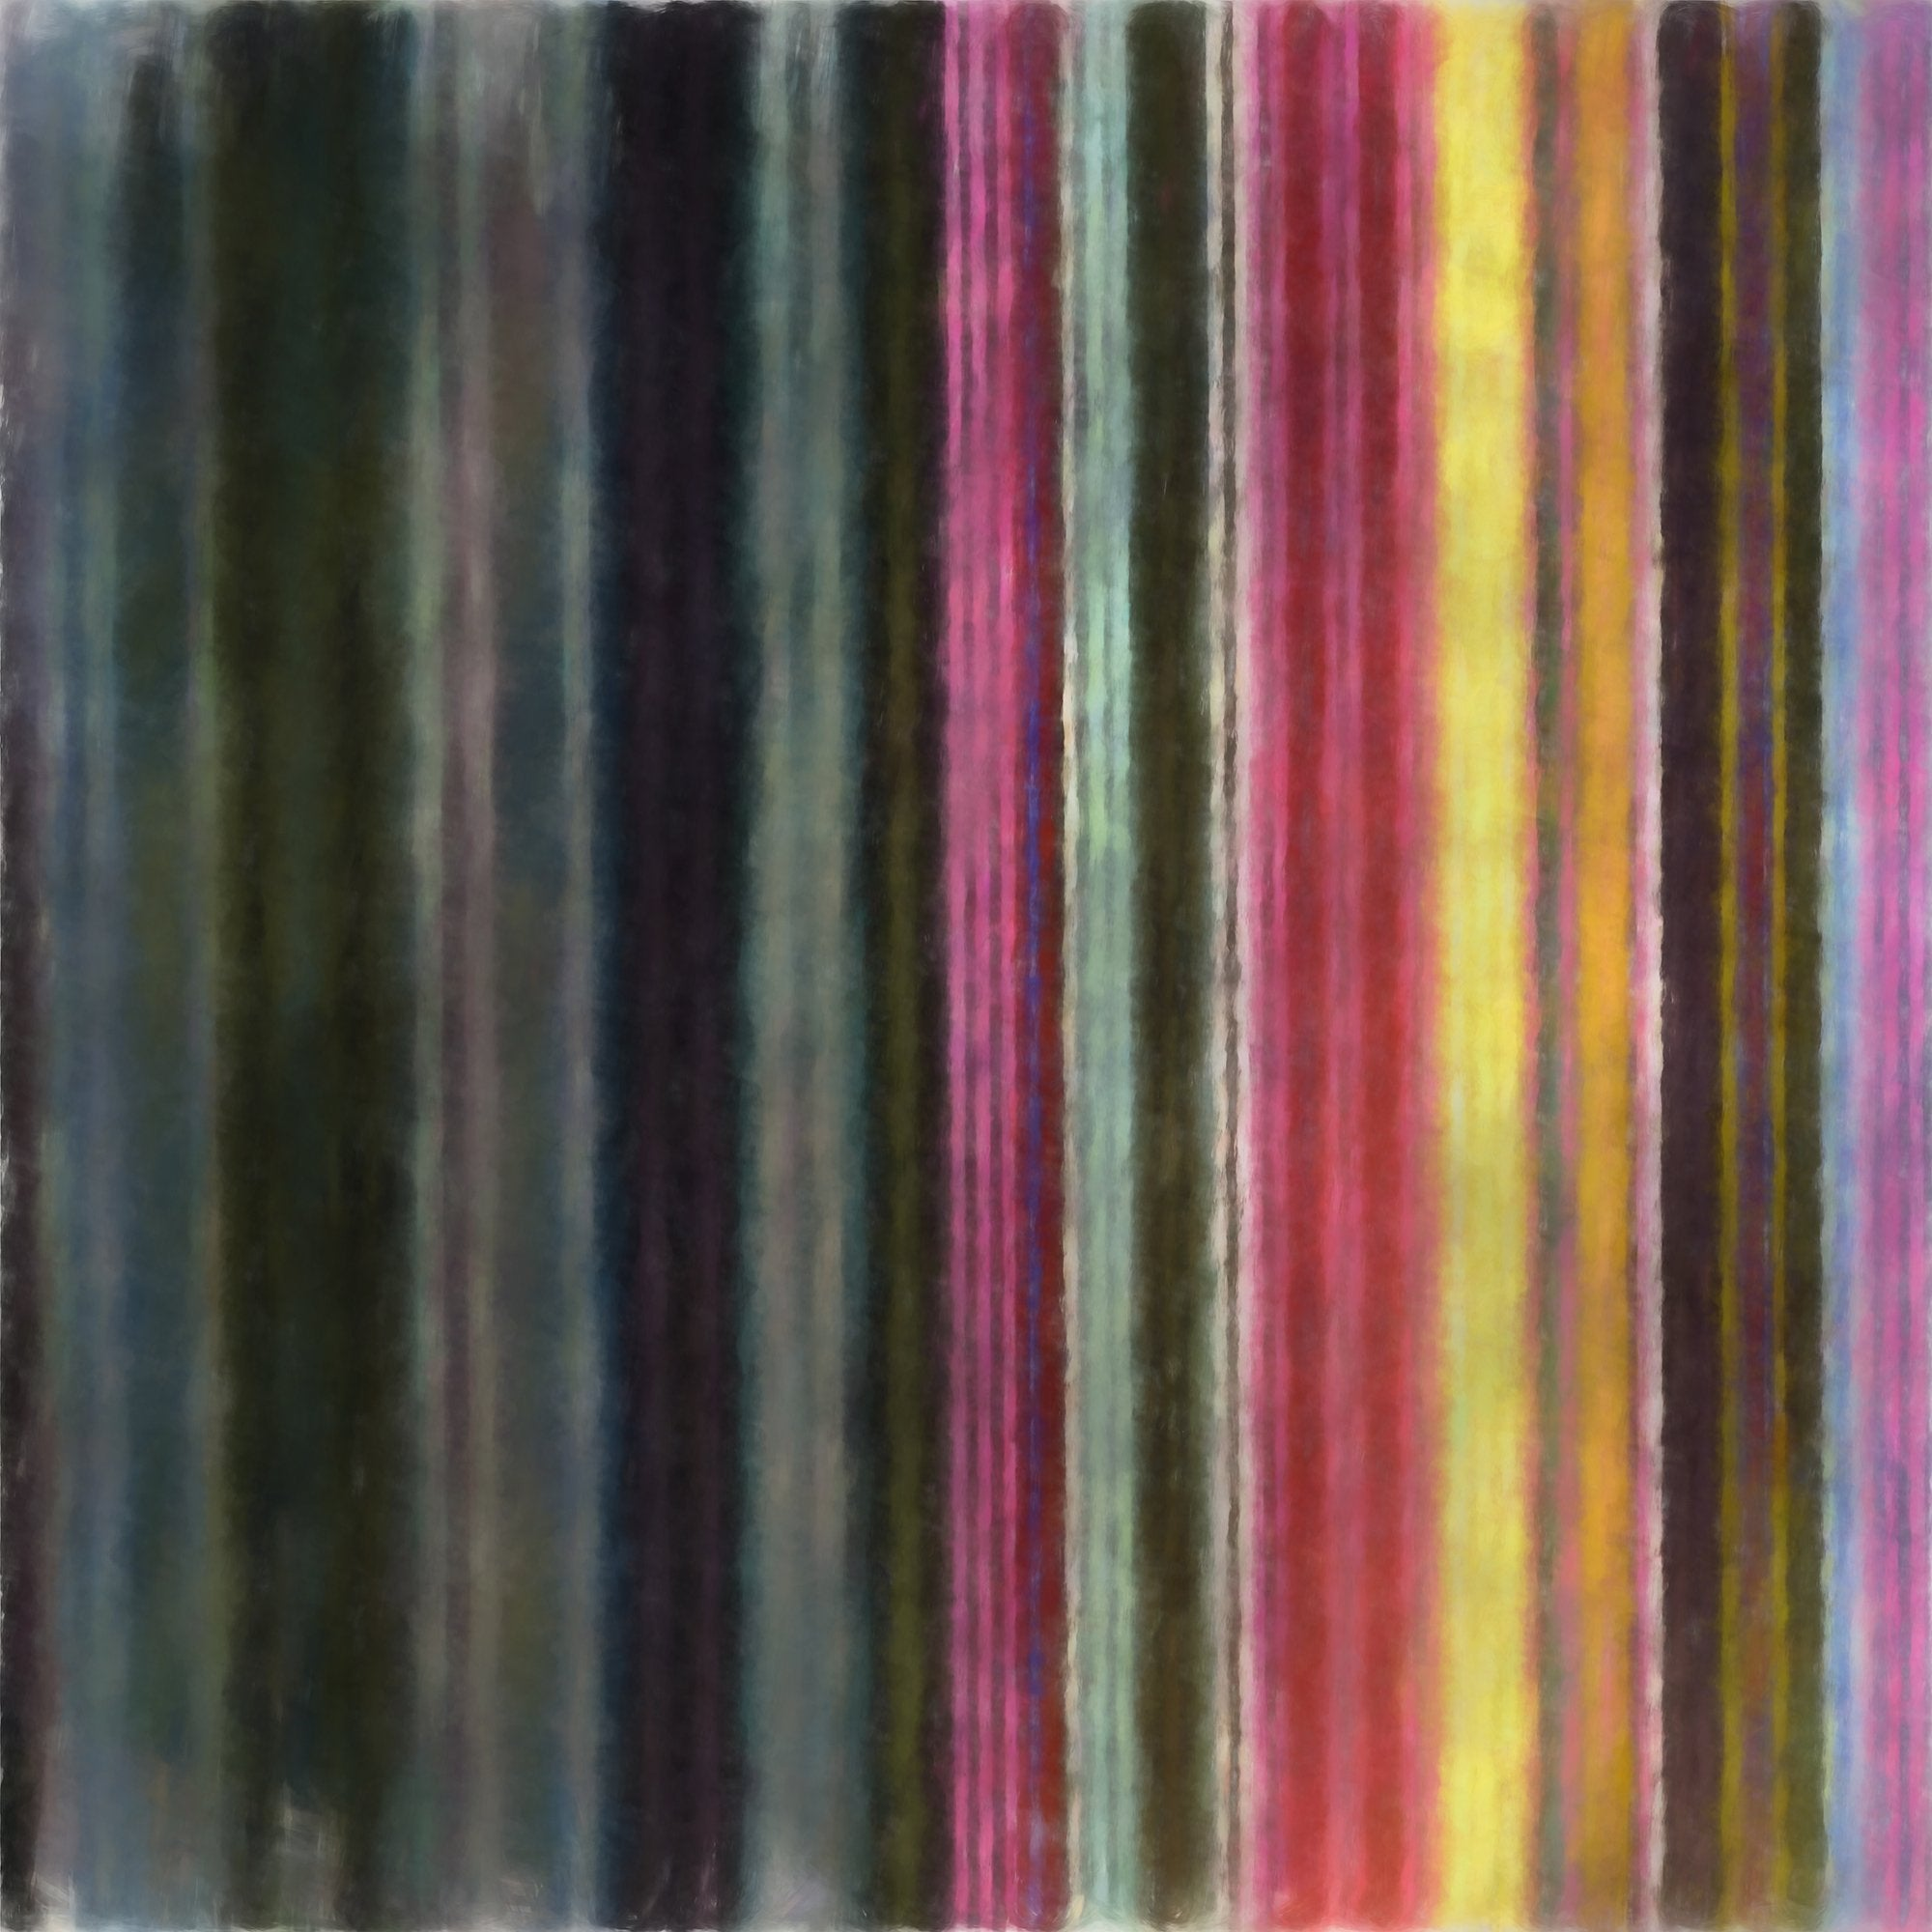 Alice Tully Hall Sampler, Reworked, Series 1